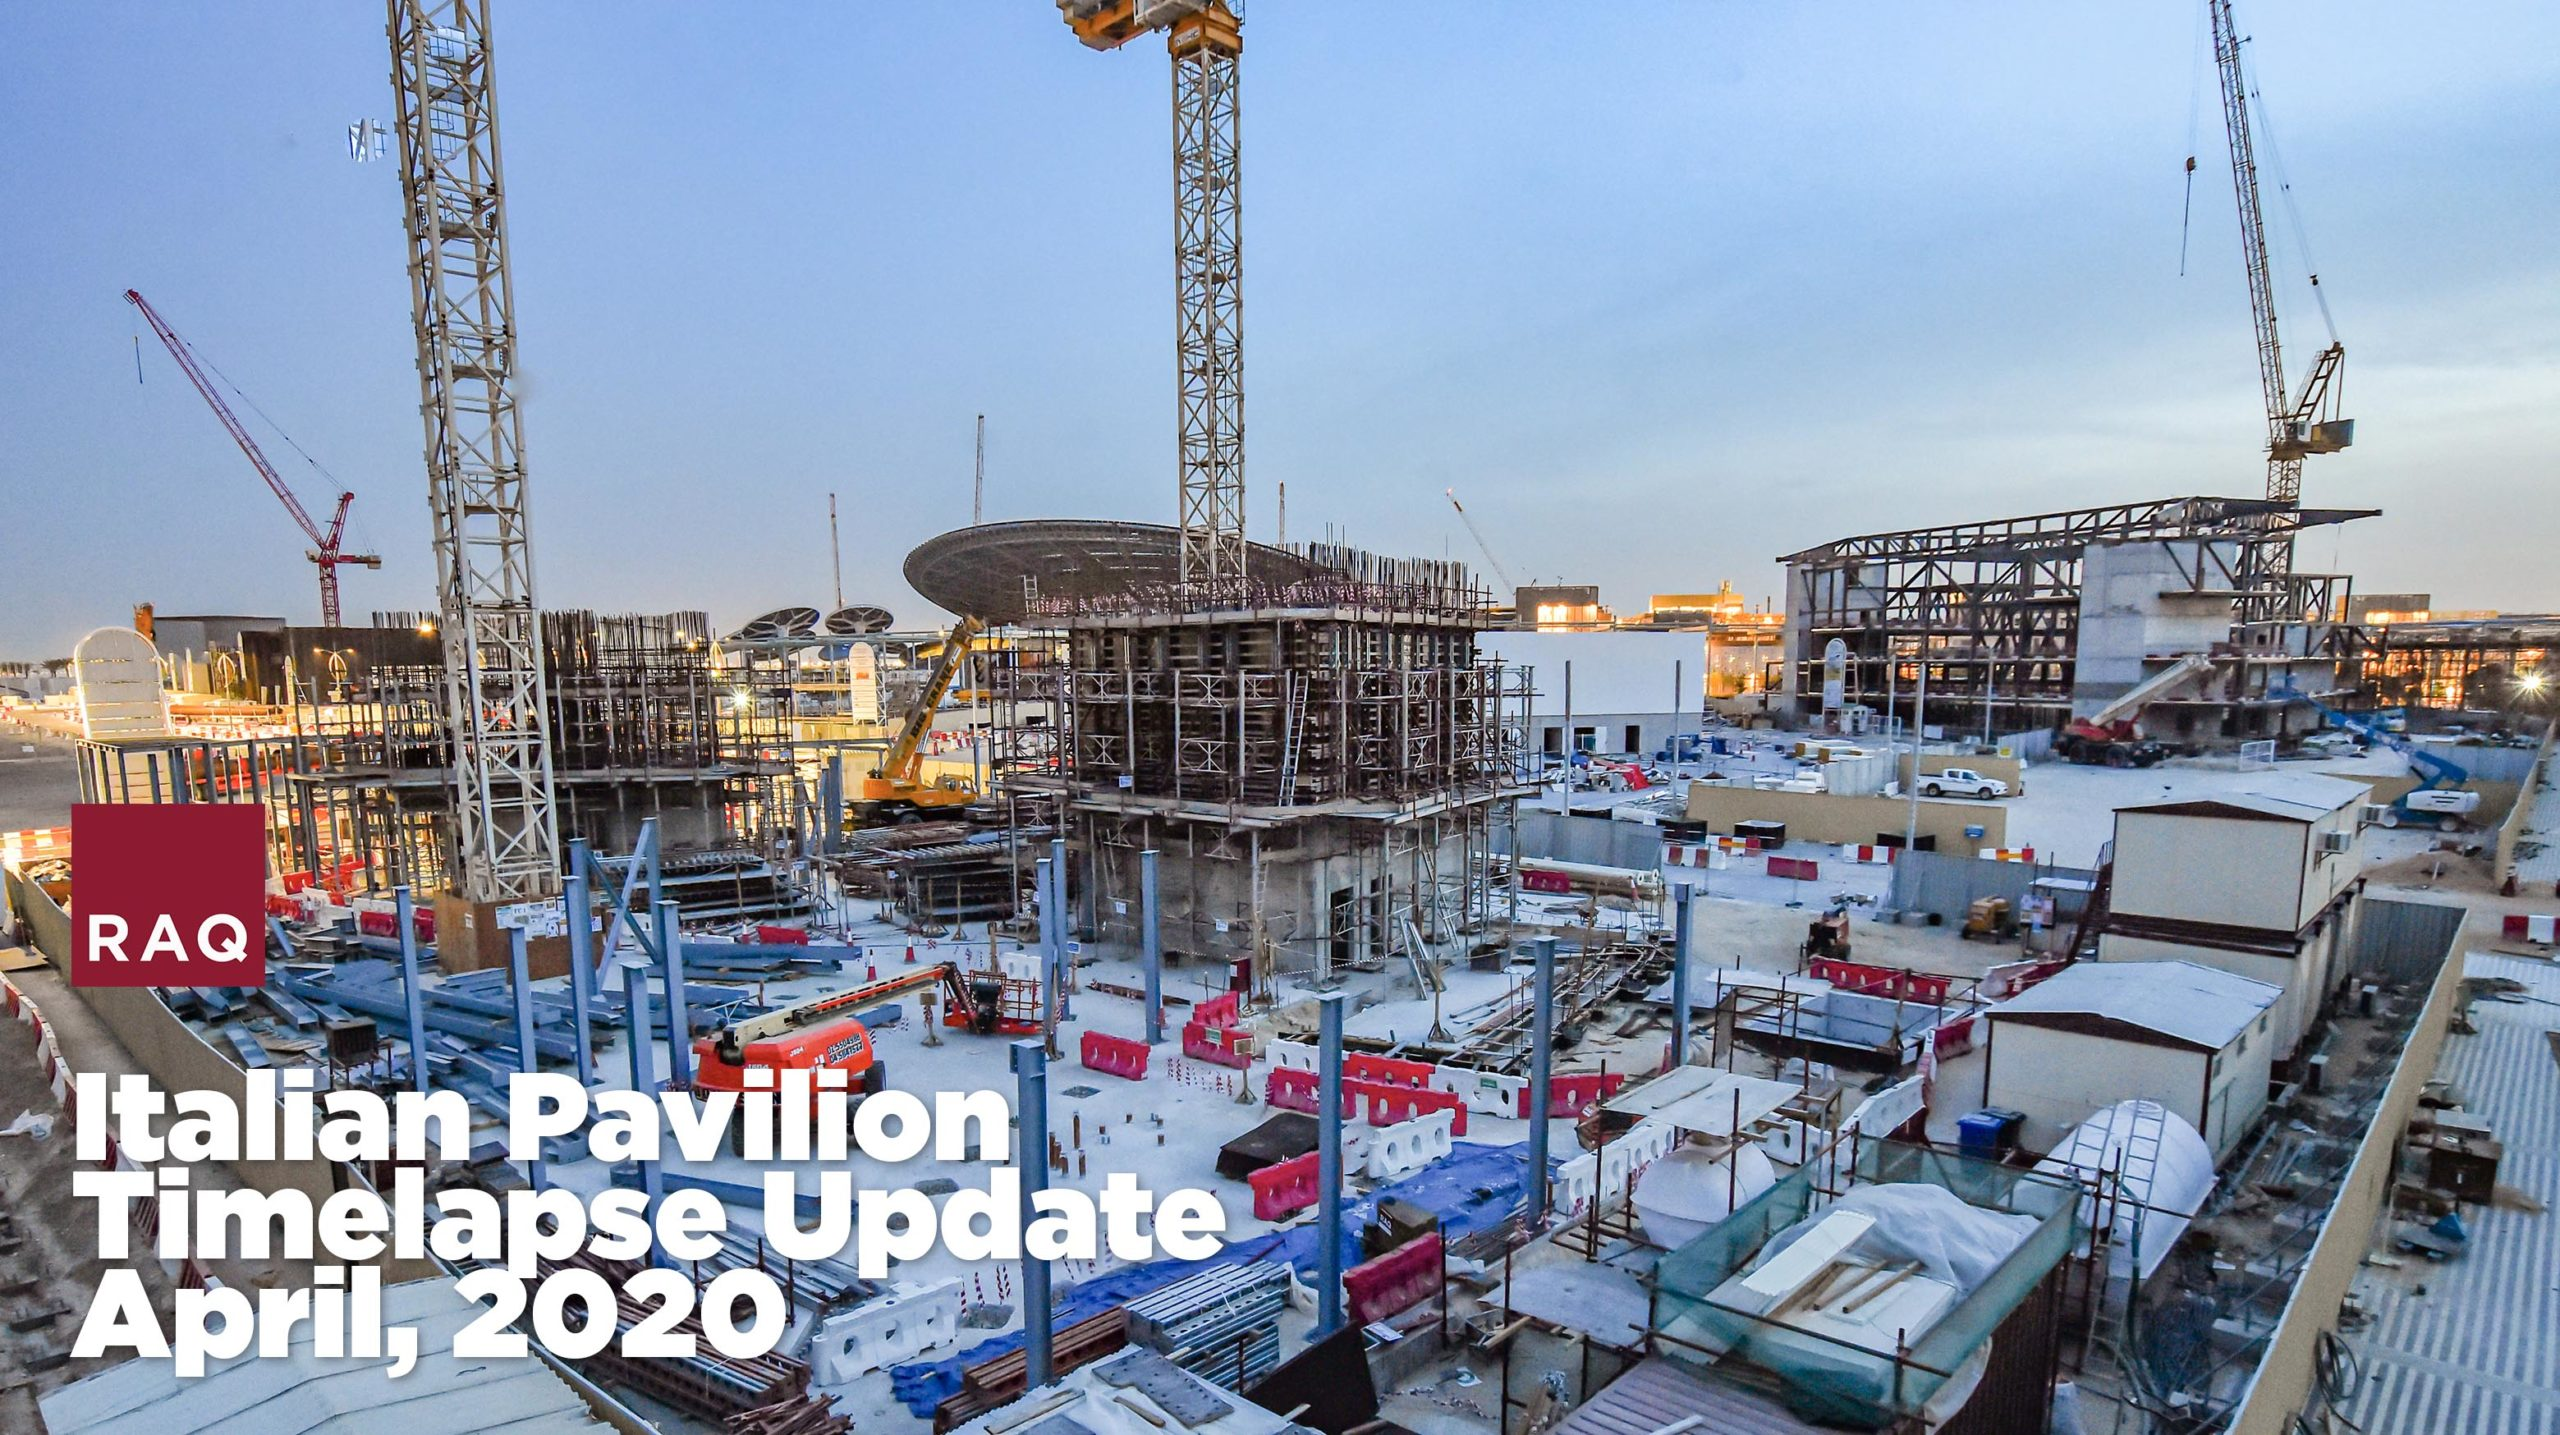 The Italian Pavilion at Expo 2020, interim construction update as of April 10, 2020